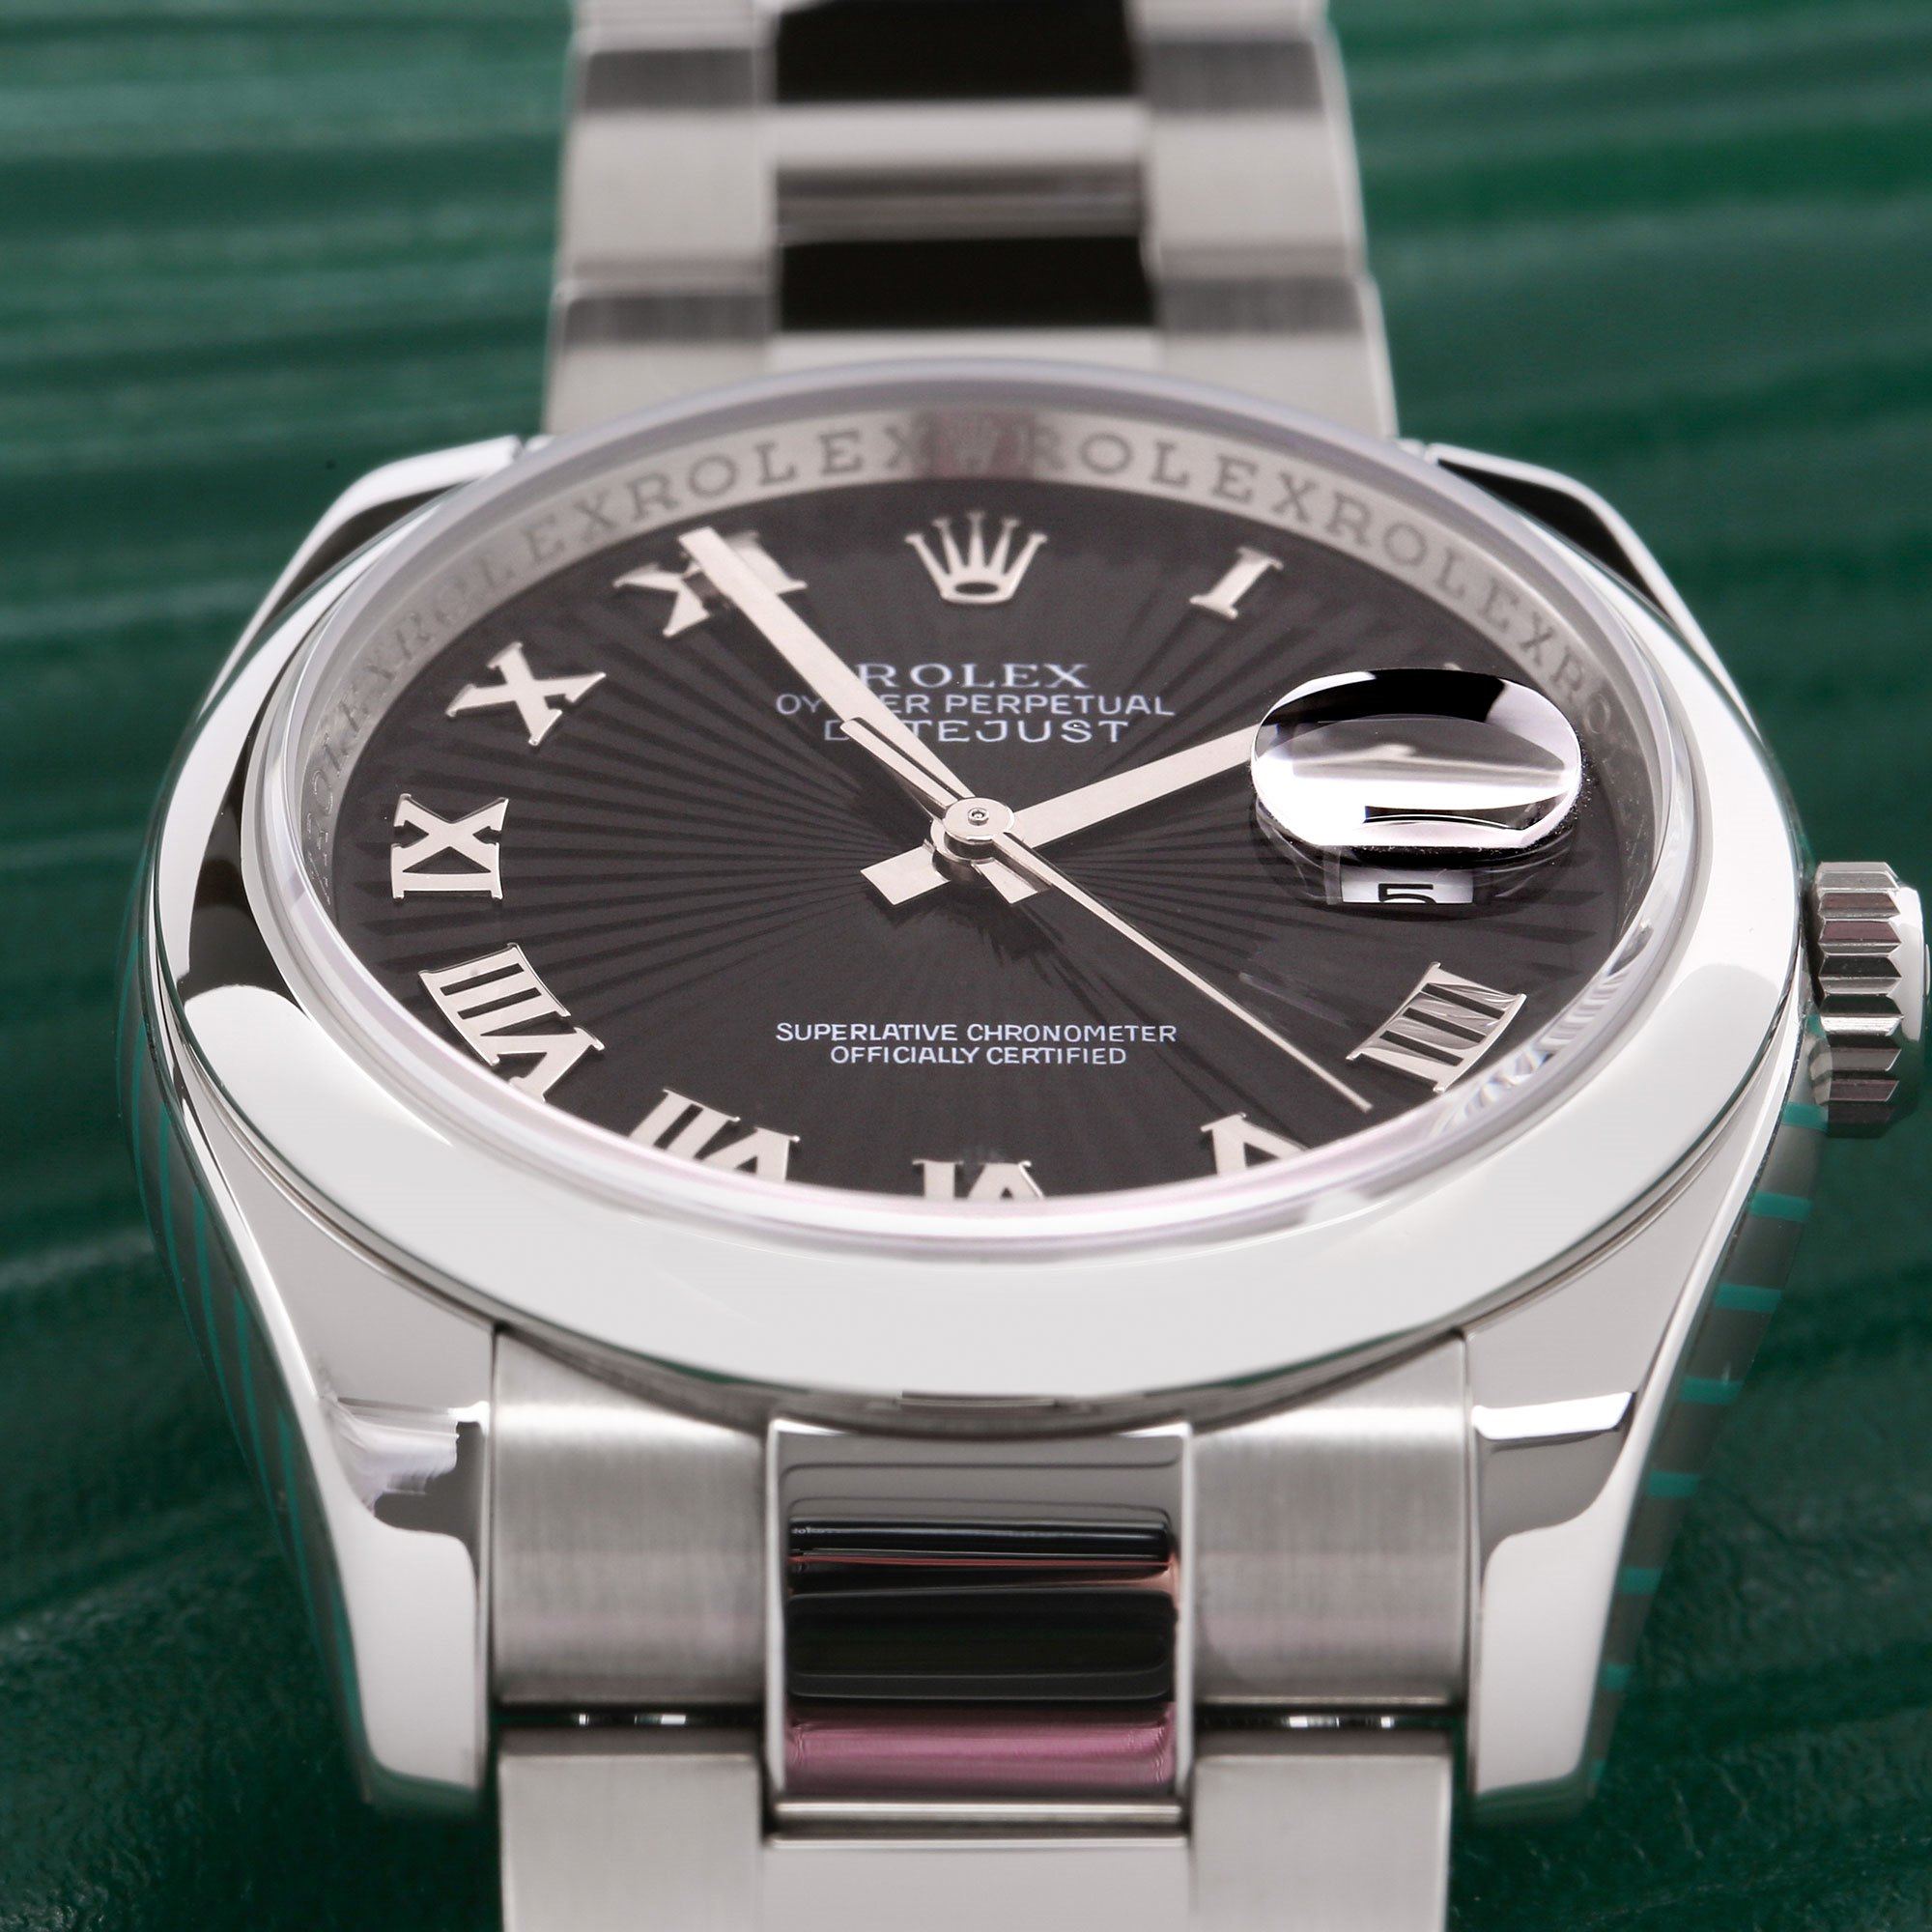 Rolex Datejust 36 116200 Men's Stainless Steel Watch - Image 6 of 12